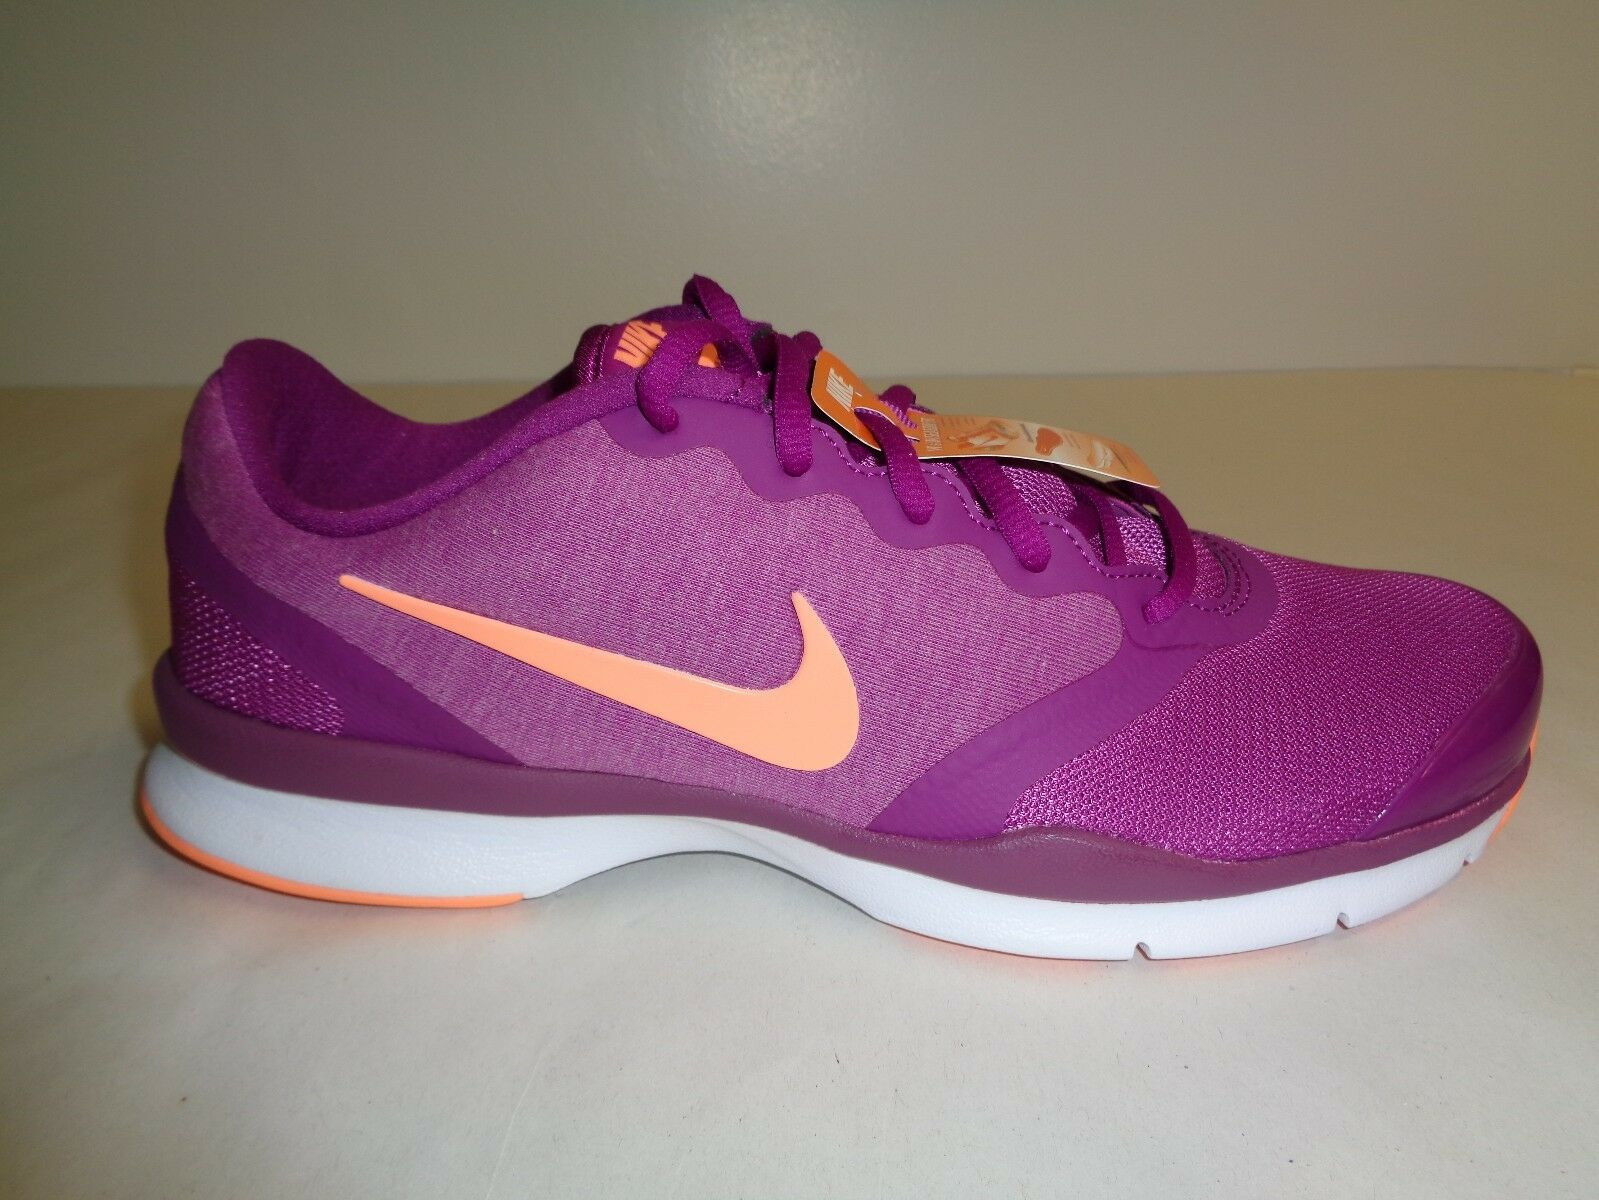 Nike Größe 9.5 IN SEASON TR 4 Berry Training Running Turnschuhe New damen schuhe